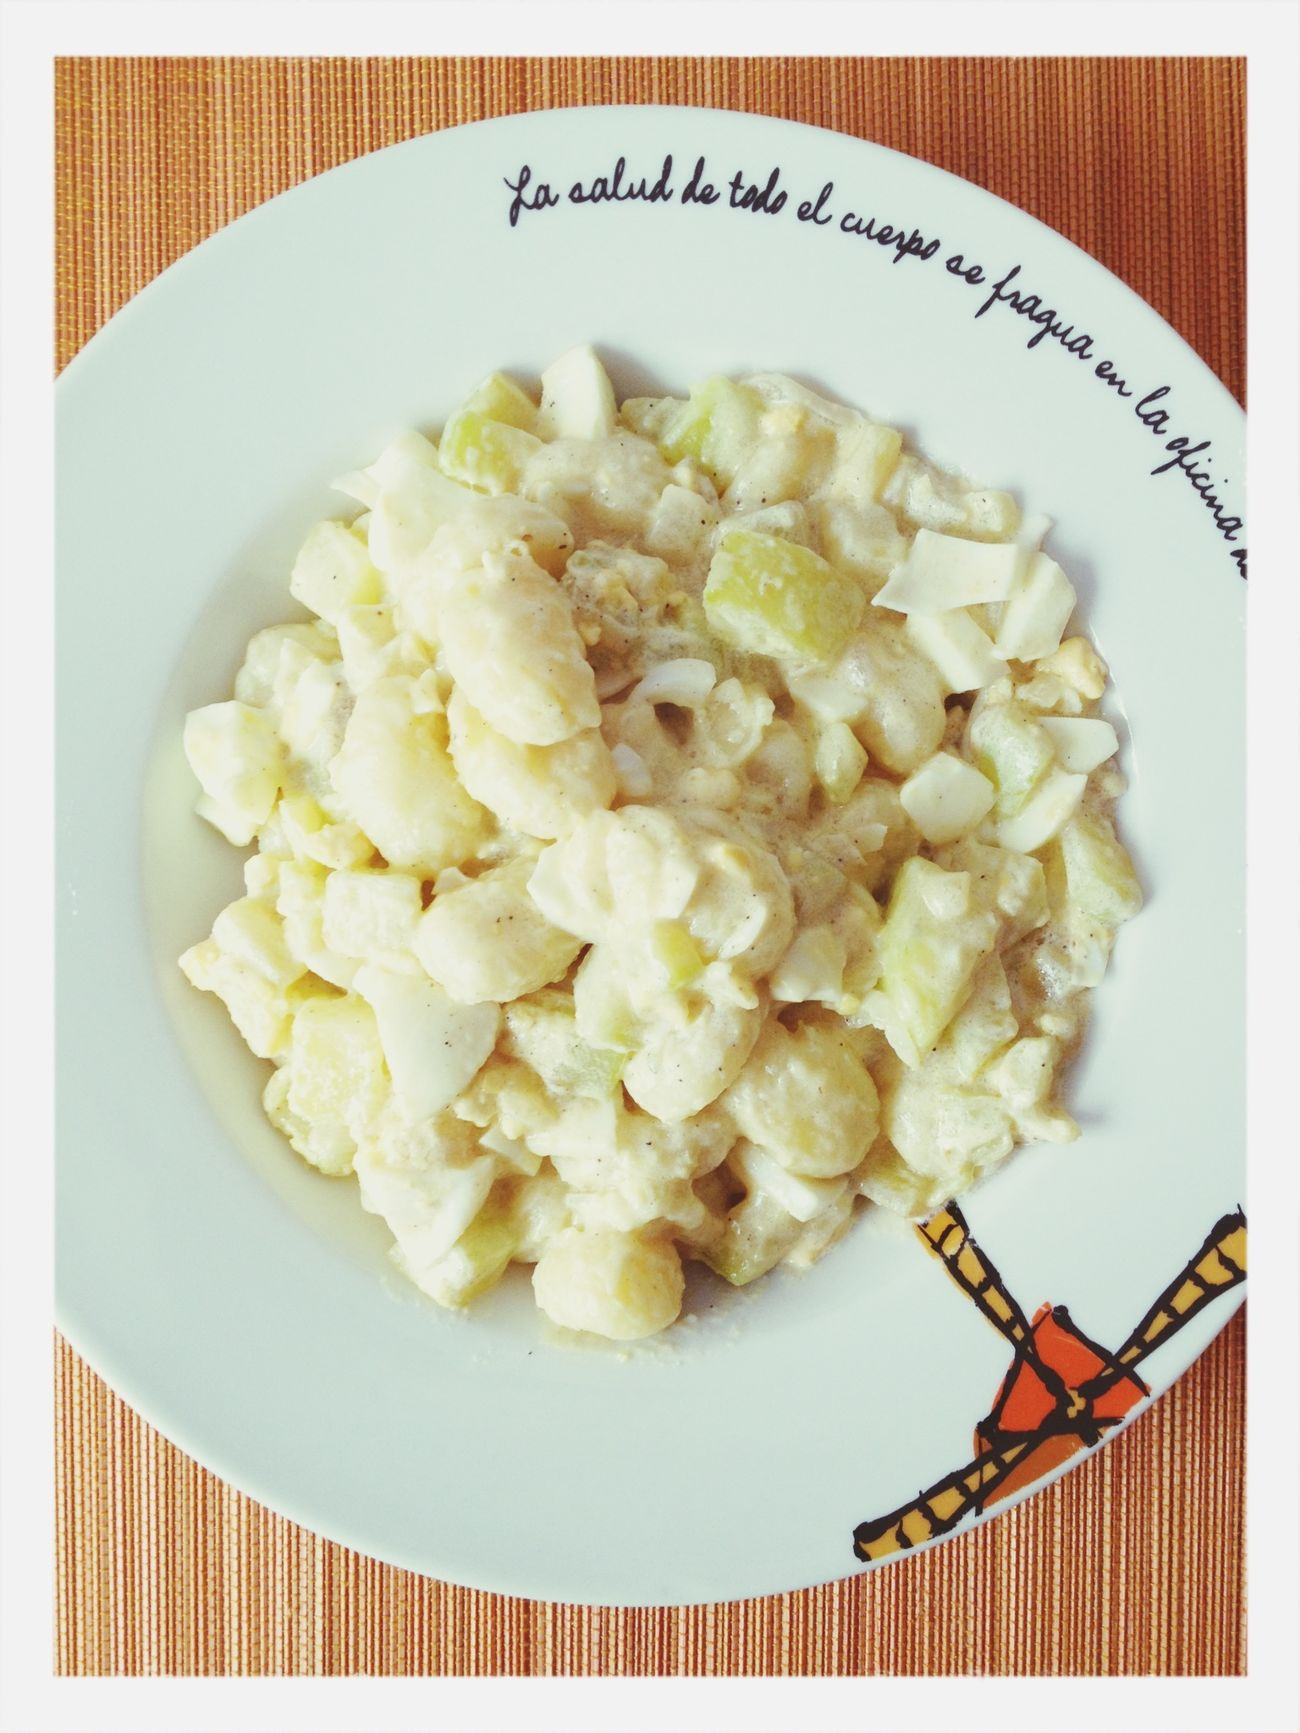 Gnoccis with zuchinni, onion, boiled egg and cream. Food Vegetarian Food Italian Food Gnocci